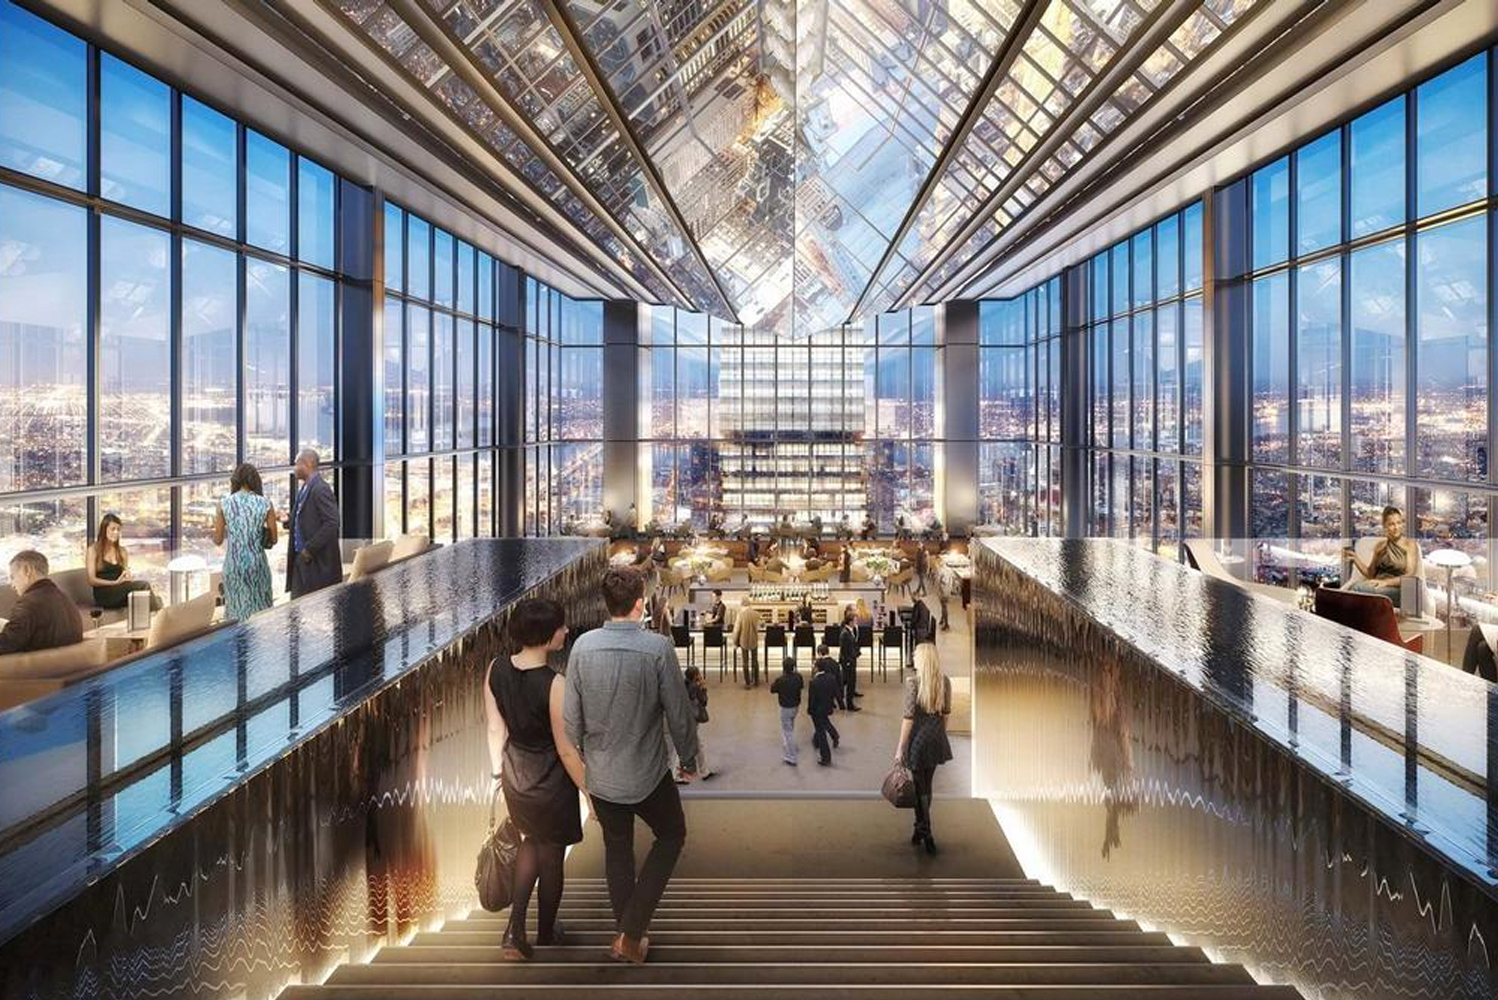 The new Four Seasons Hotel Philadelphia at Comcast Center will have 219 bedrooms on the 48th to 56th floors.